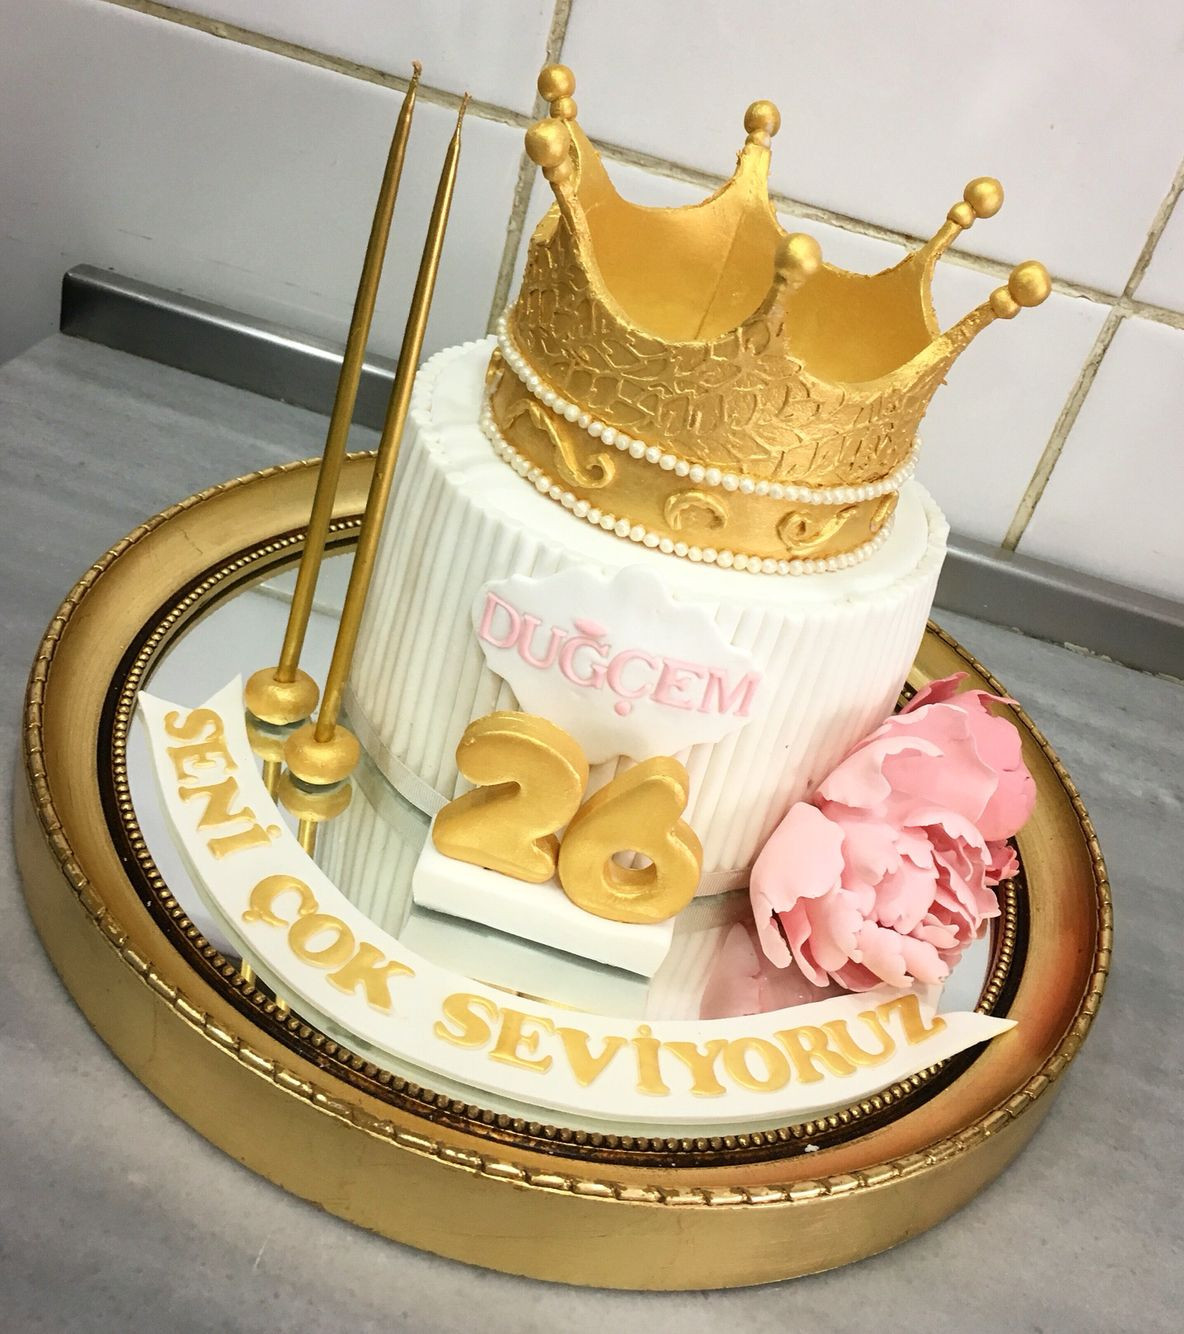 Best ideas about Crown Birthday Cake . Save or Pin queen crown birthday cake Now.